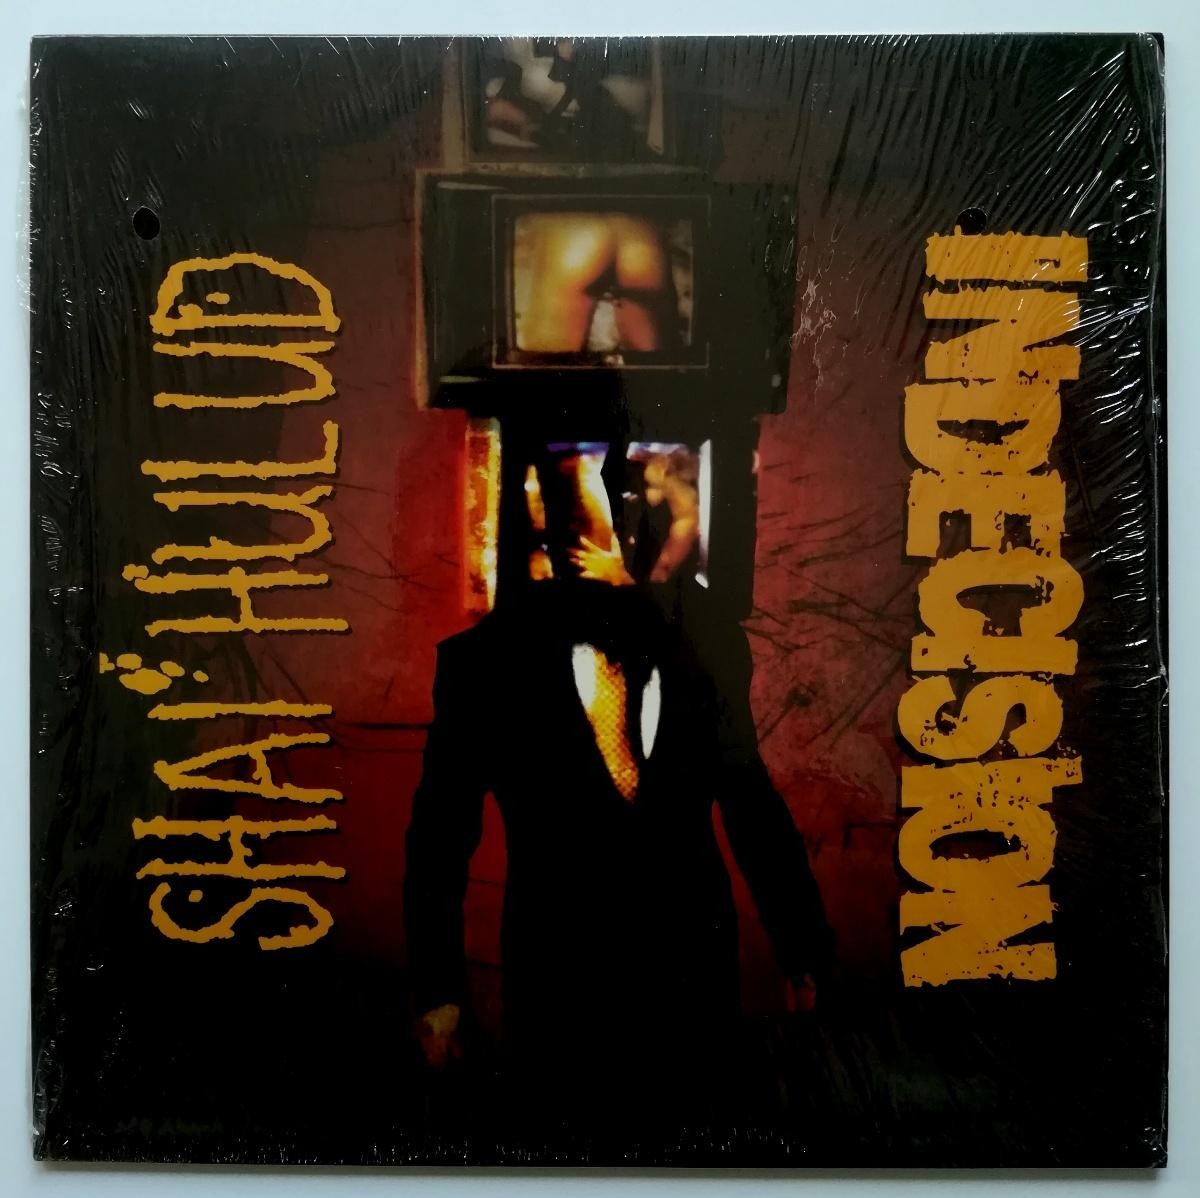 Shai Hulud/indecision - Fall Of Every Man